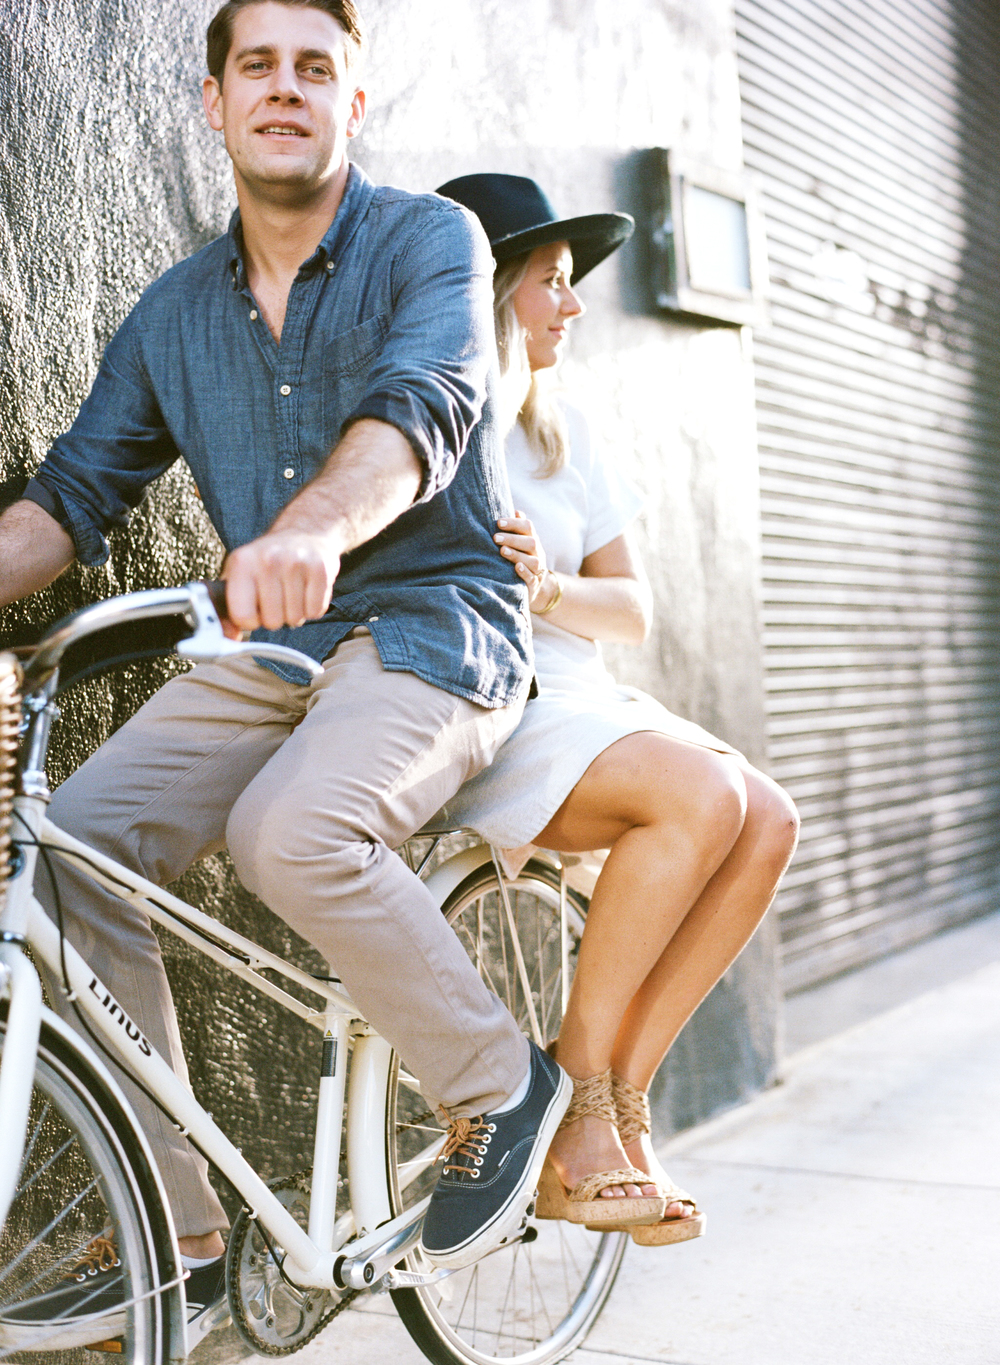 A groom-to-be rides a bicycle while his fiancee sits in back during an engagement session with Sylvie Gil.